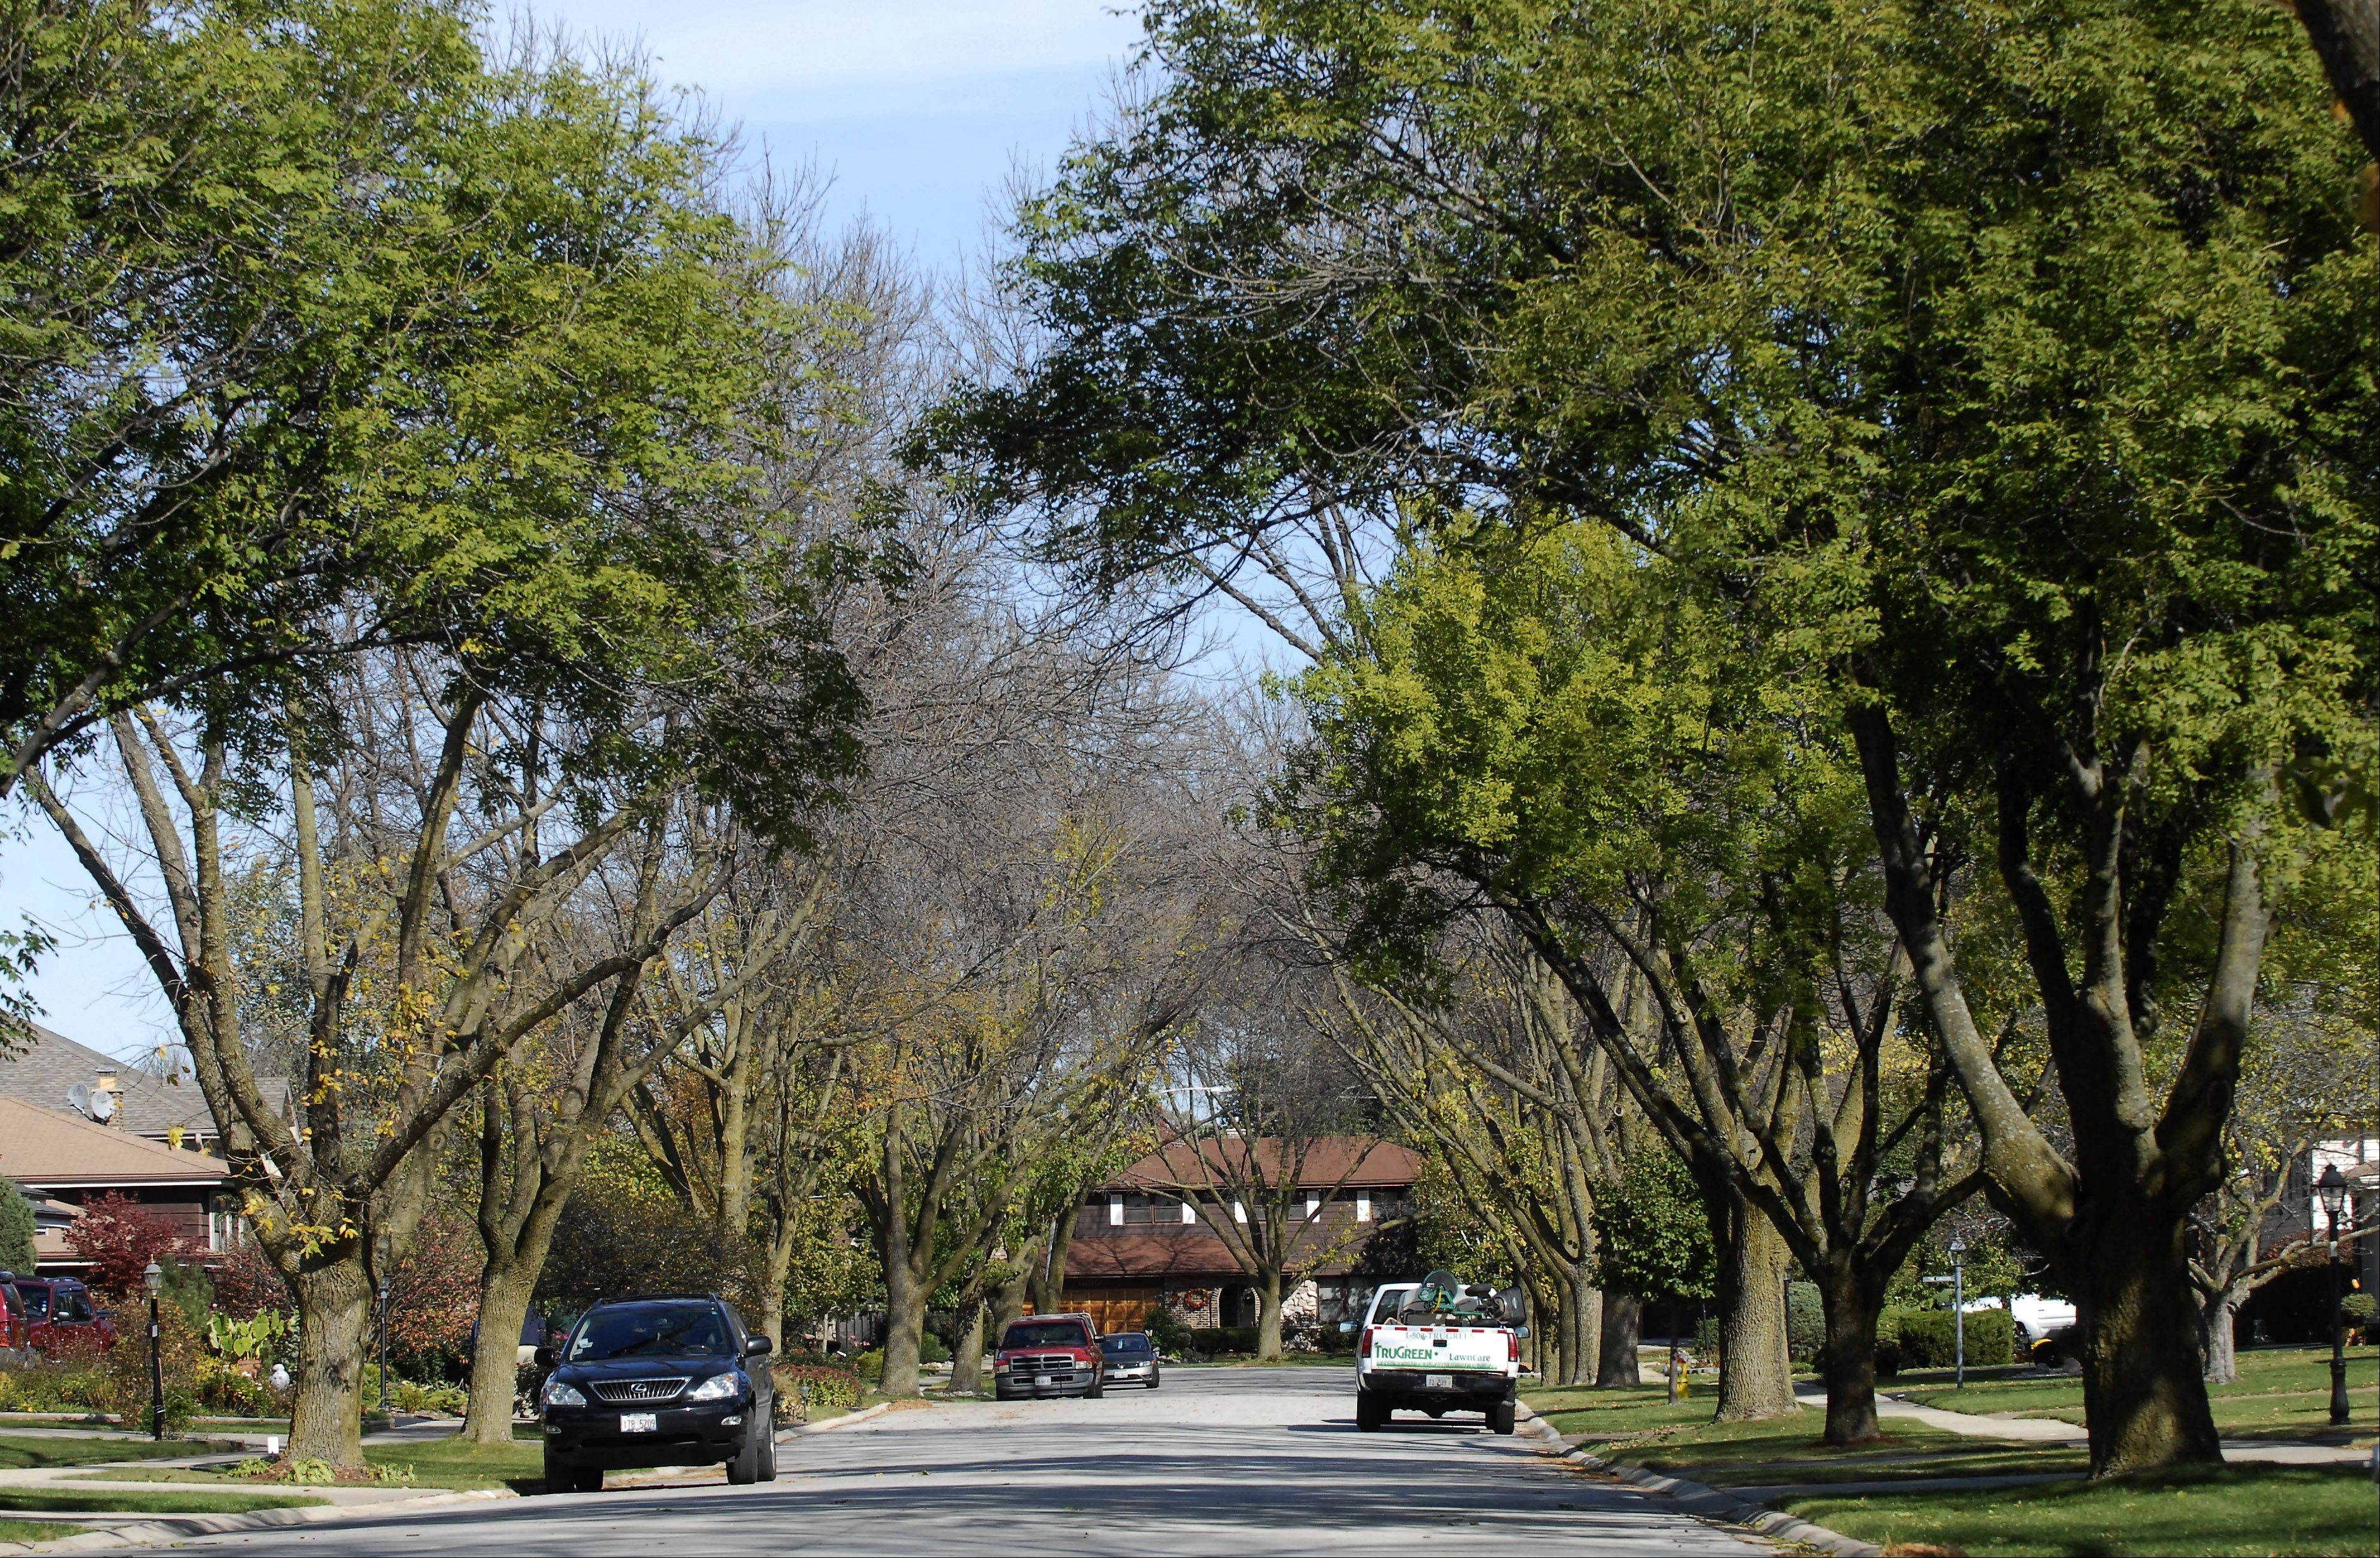 Trees on Grace Drive in Mount Prospect form a canopy over the street. Resident Carrie Brooks started a drive to save the ash trees on her block from the emerald ash borer. Thirteen parkway trees were treated at the expense of homeowners.